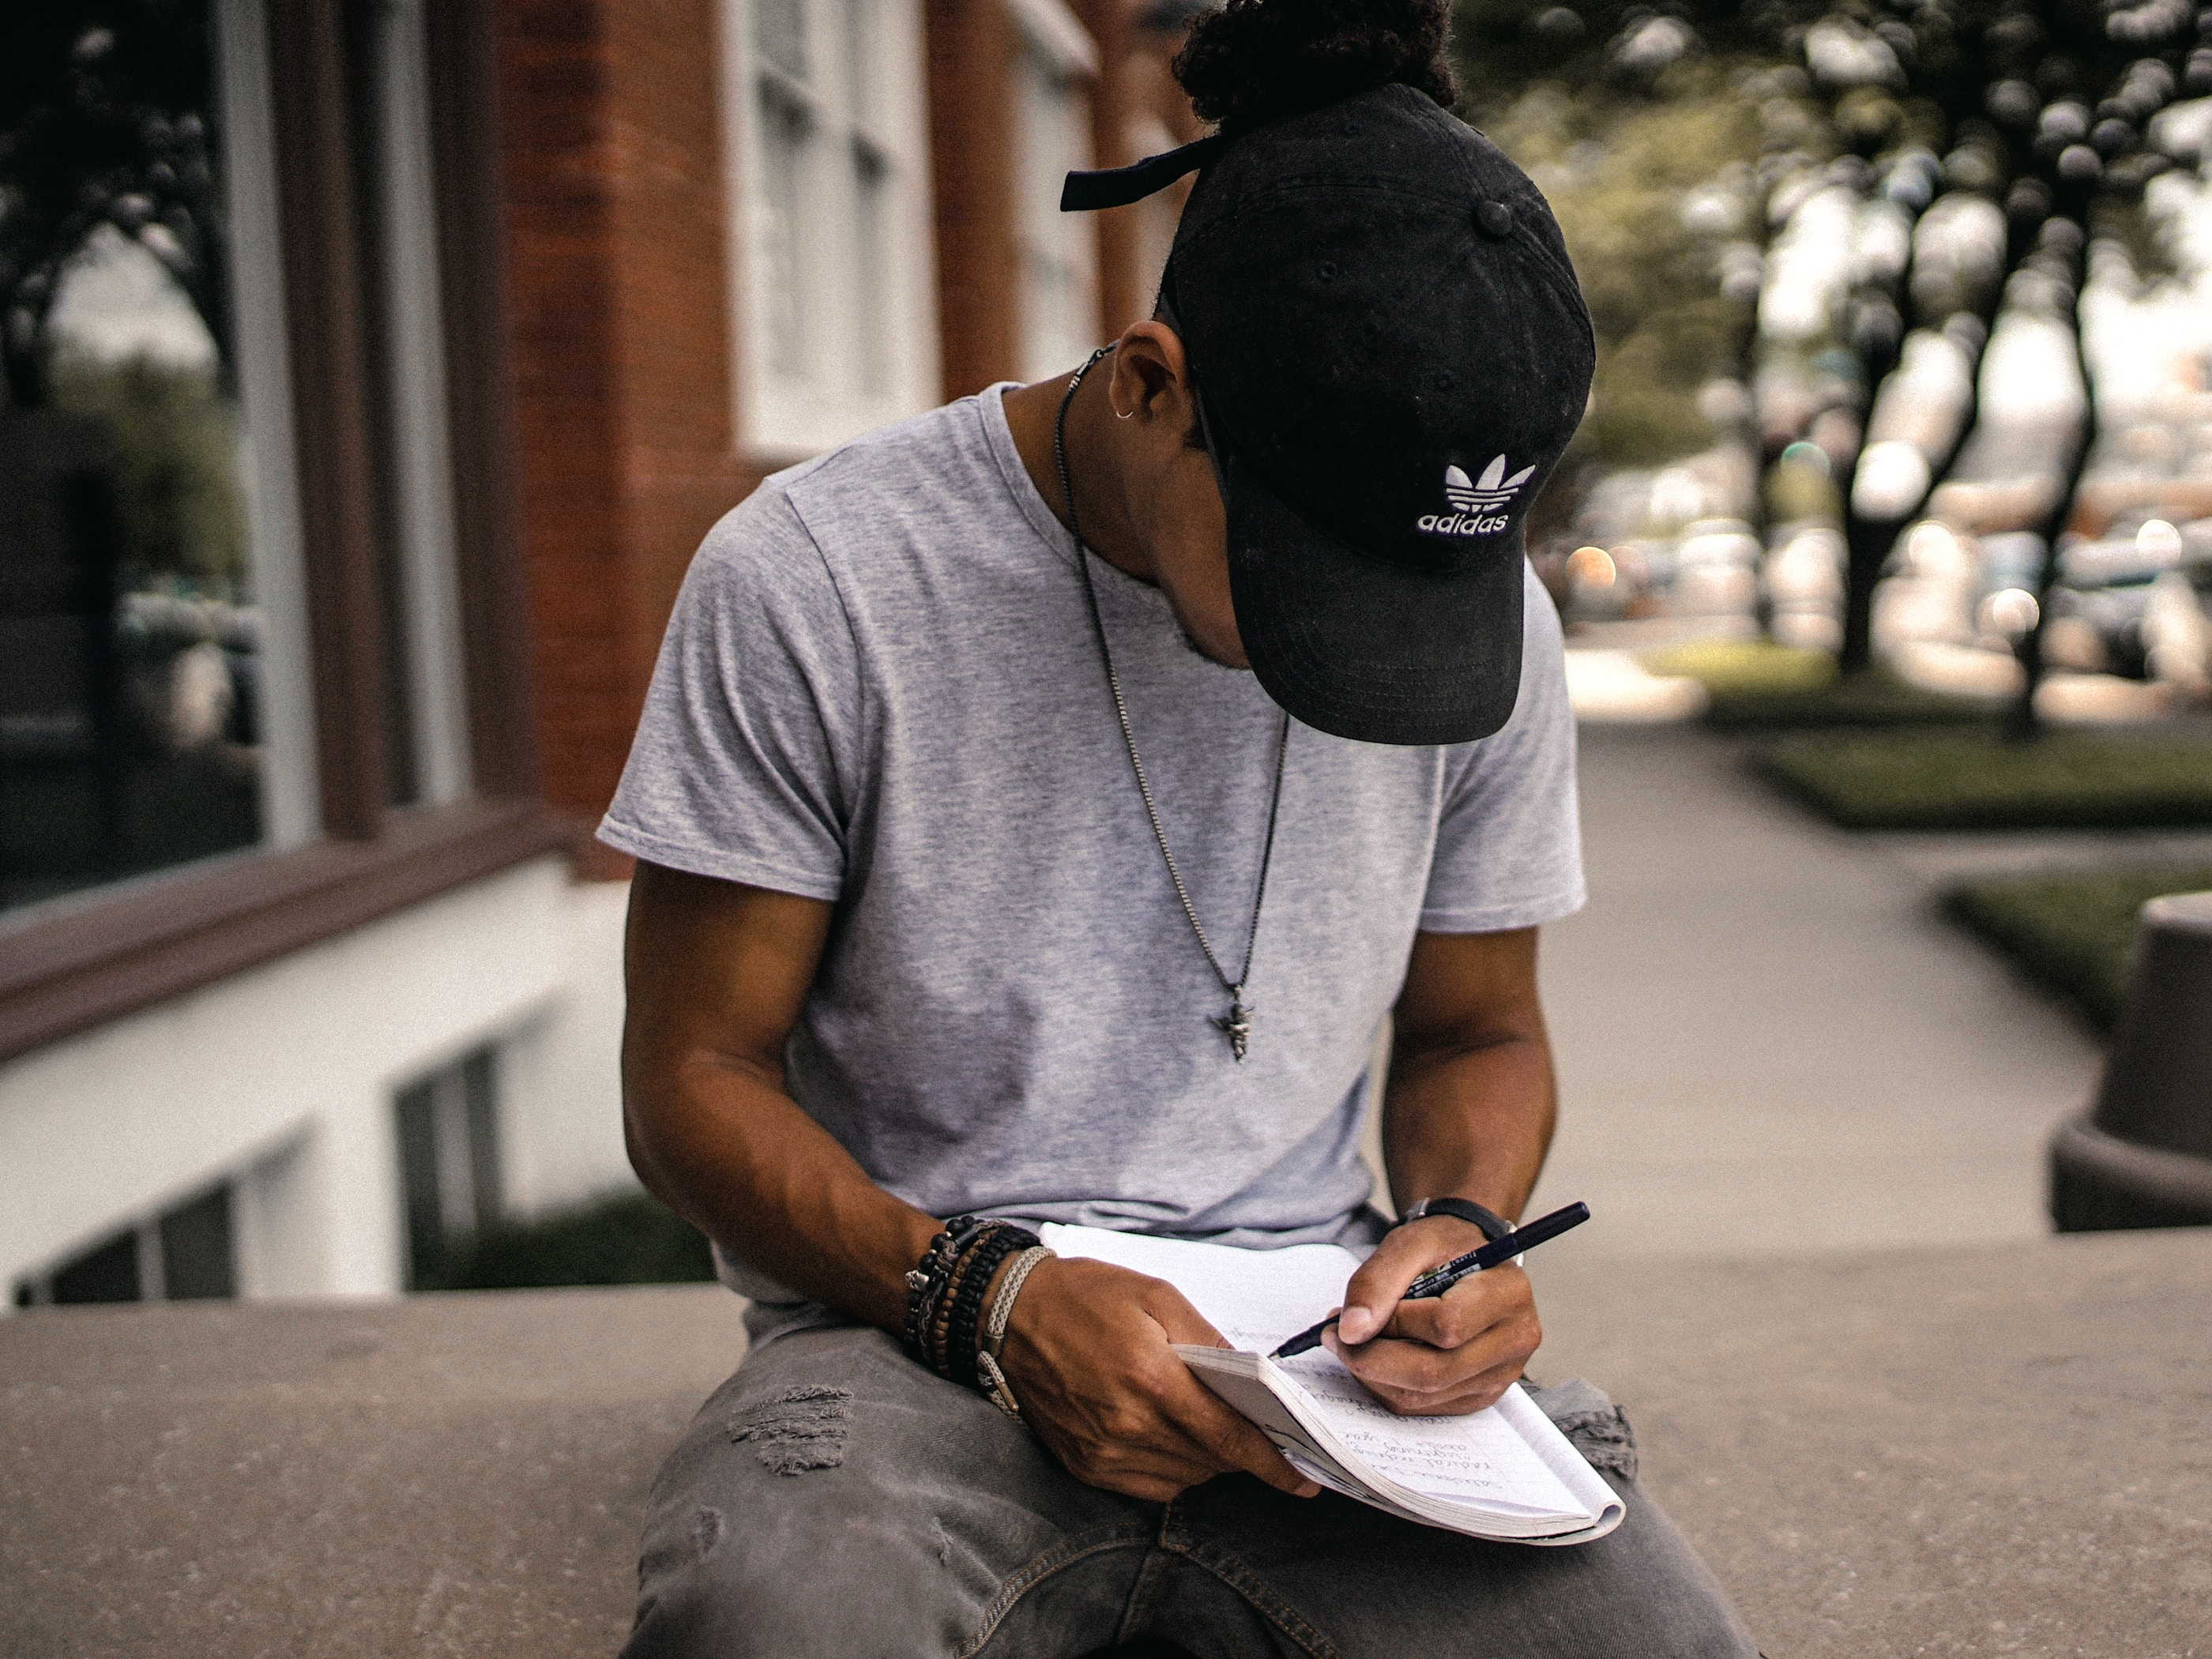 Put The Pen Down - Will's Guide To Living In The Moment